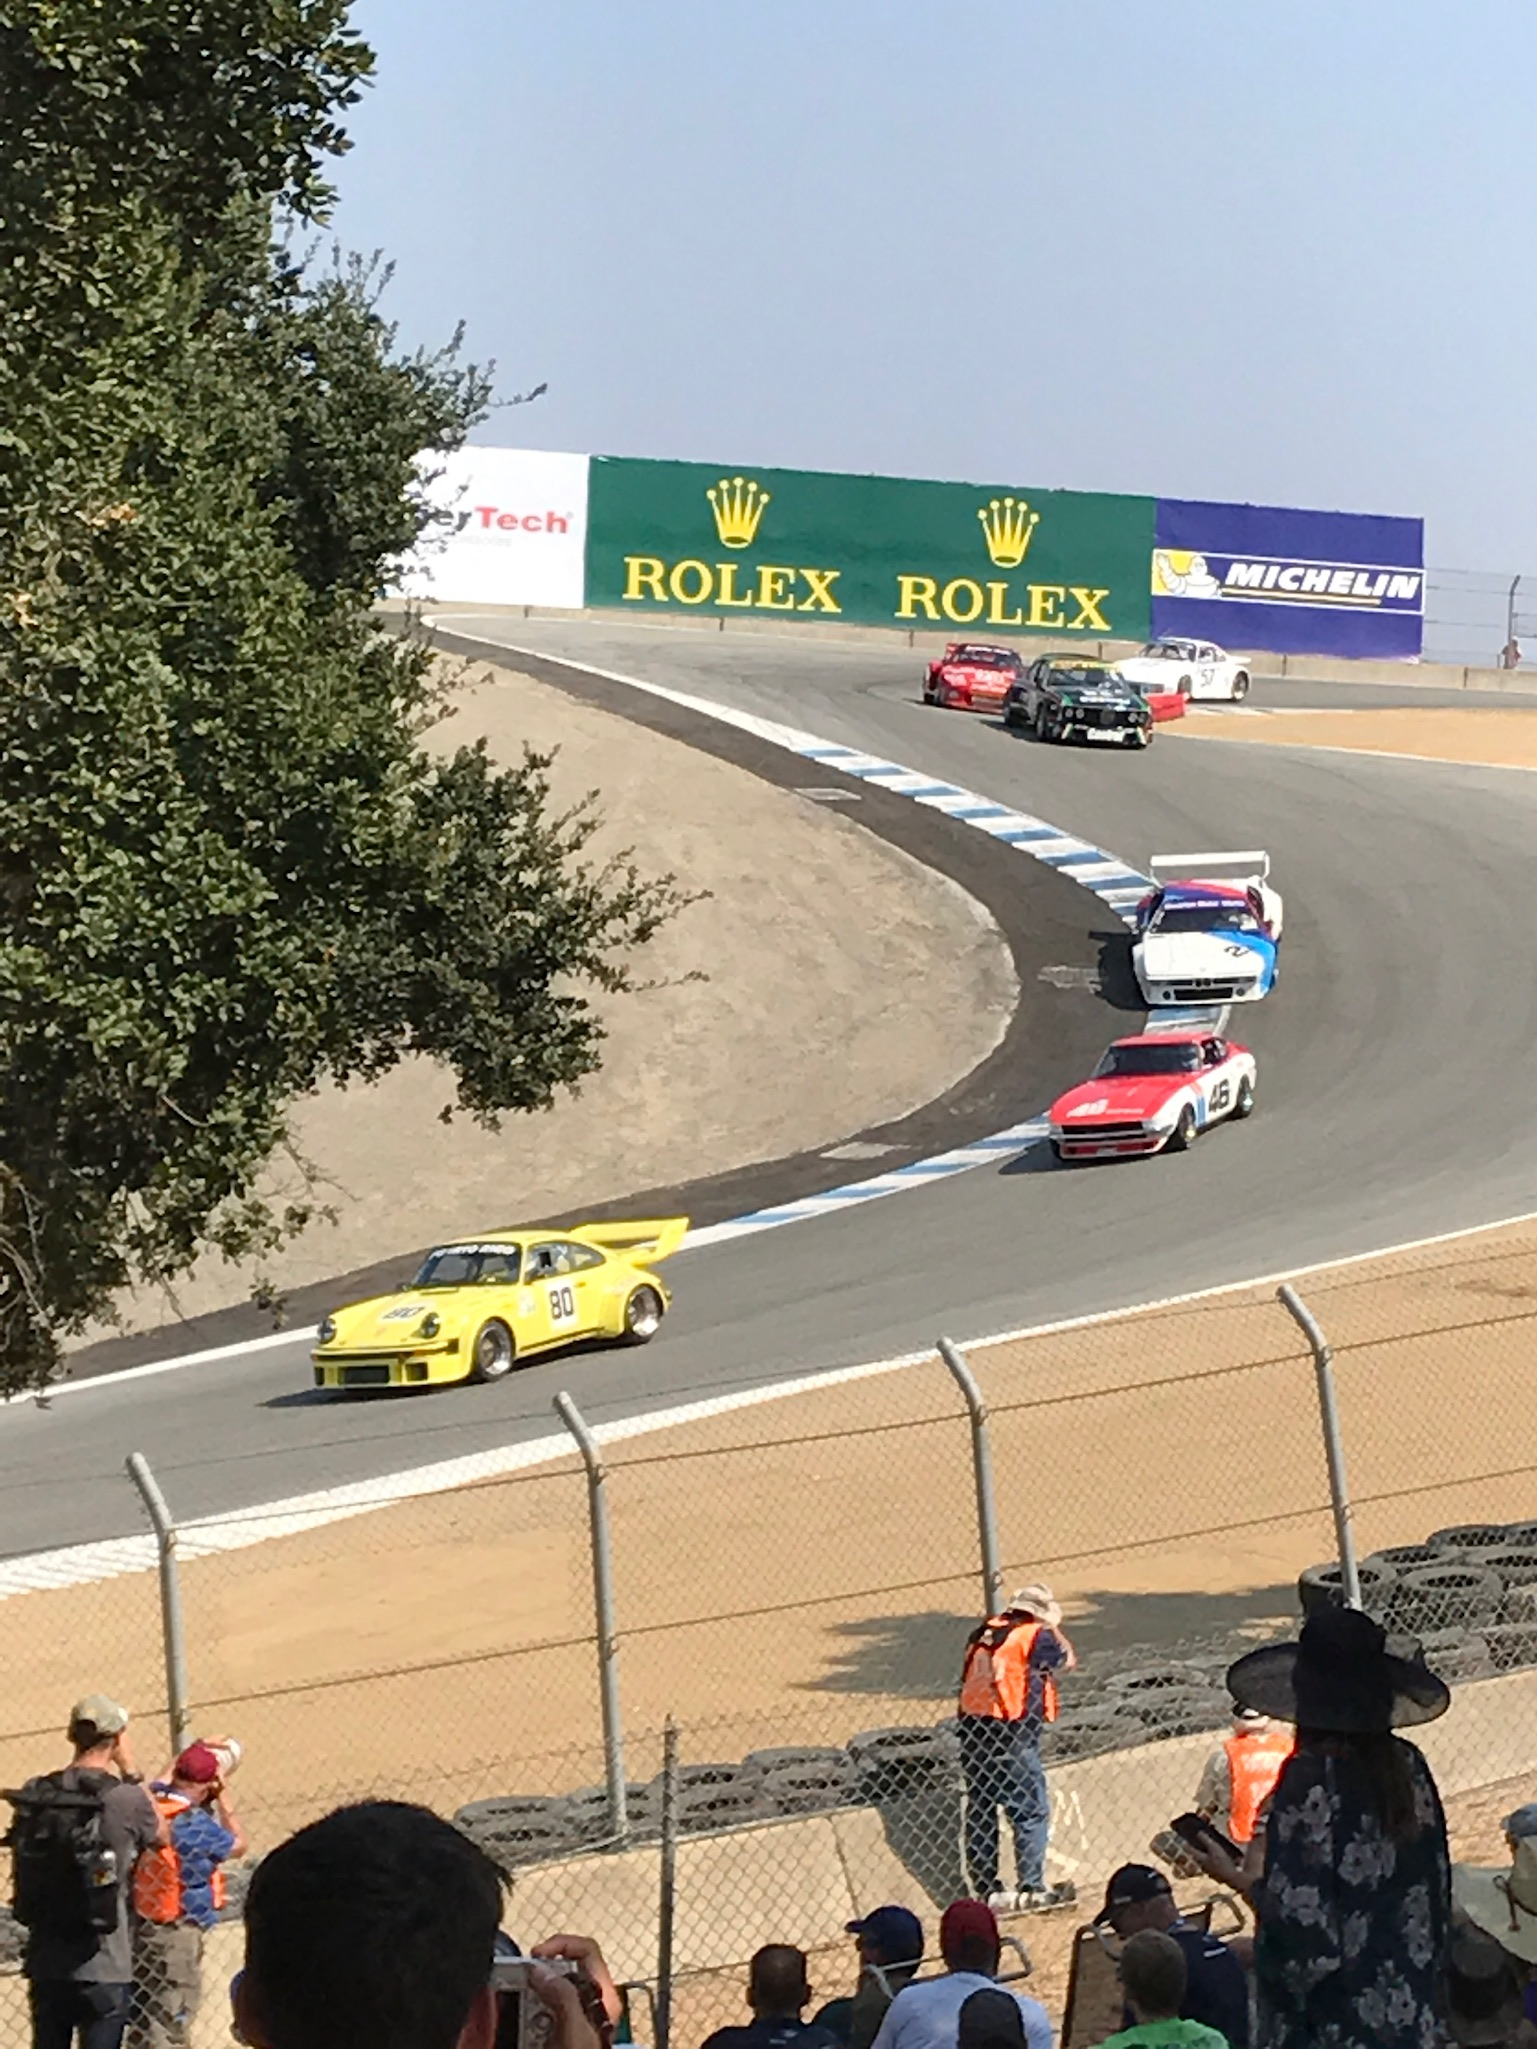 This event features the best of every decade of racing history all condensed into four days of qualifying and competition at mazda laguna seca raceway